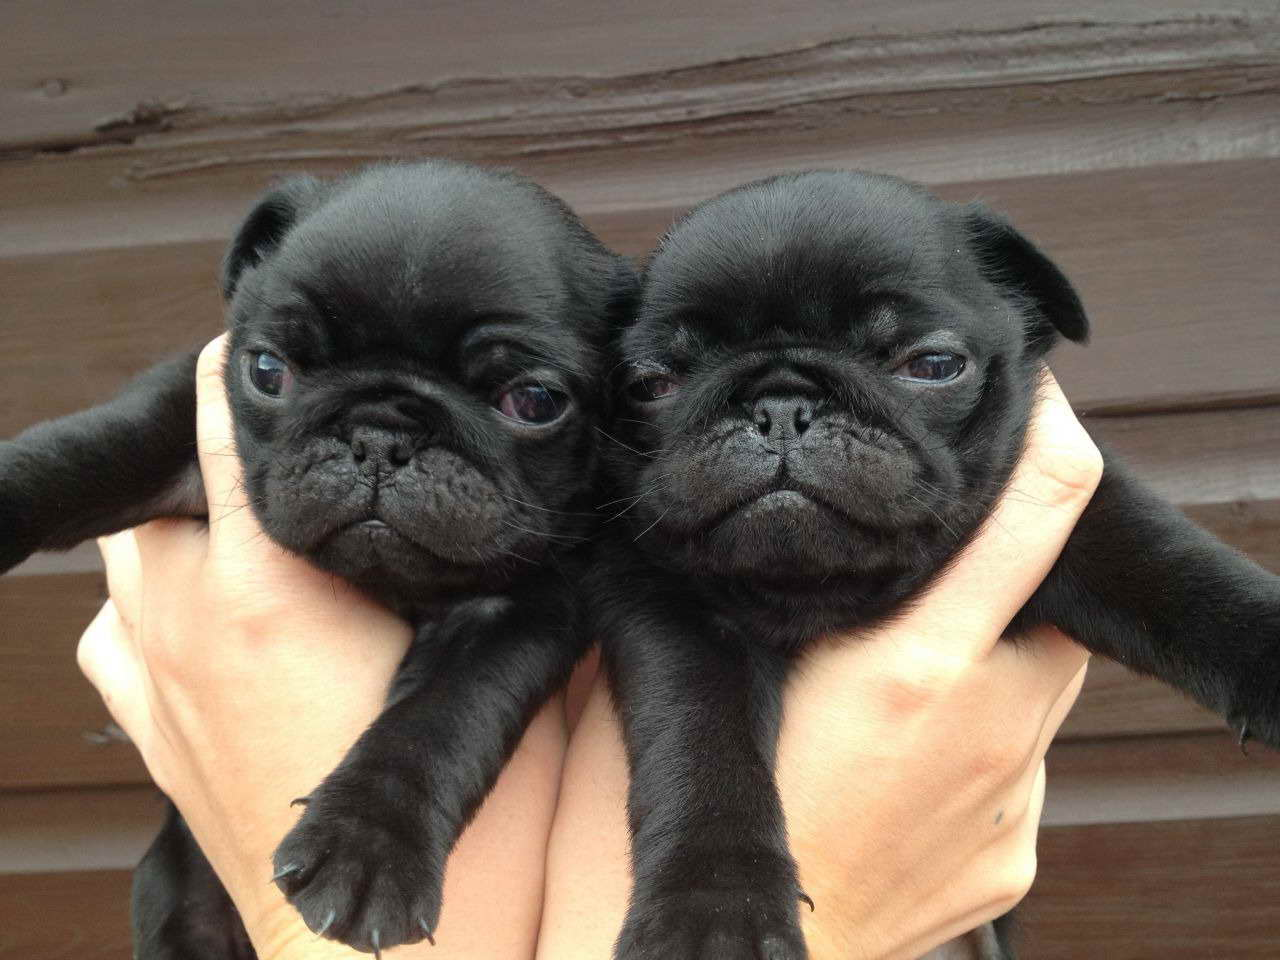 Black Pug Puppies For Sale Near Me